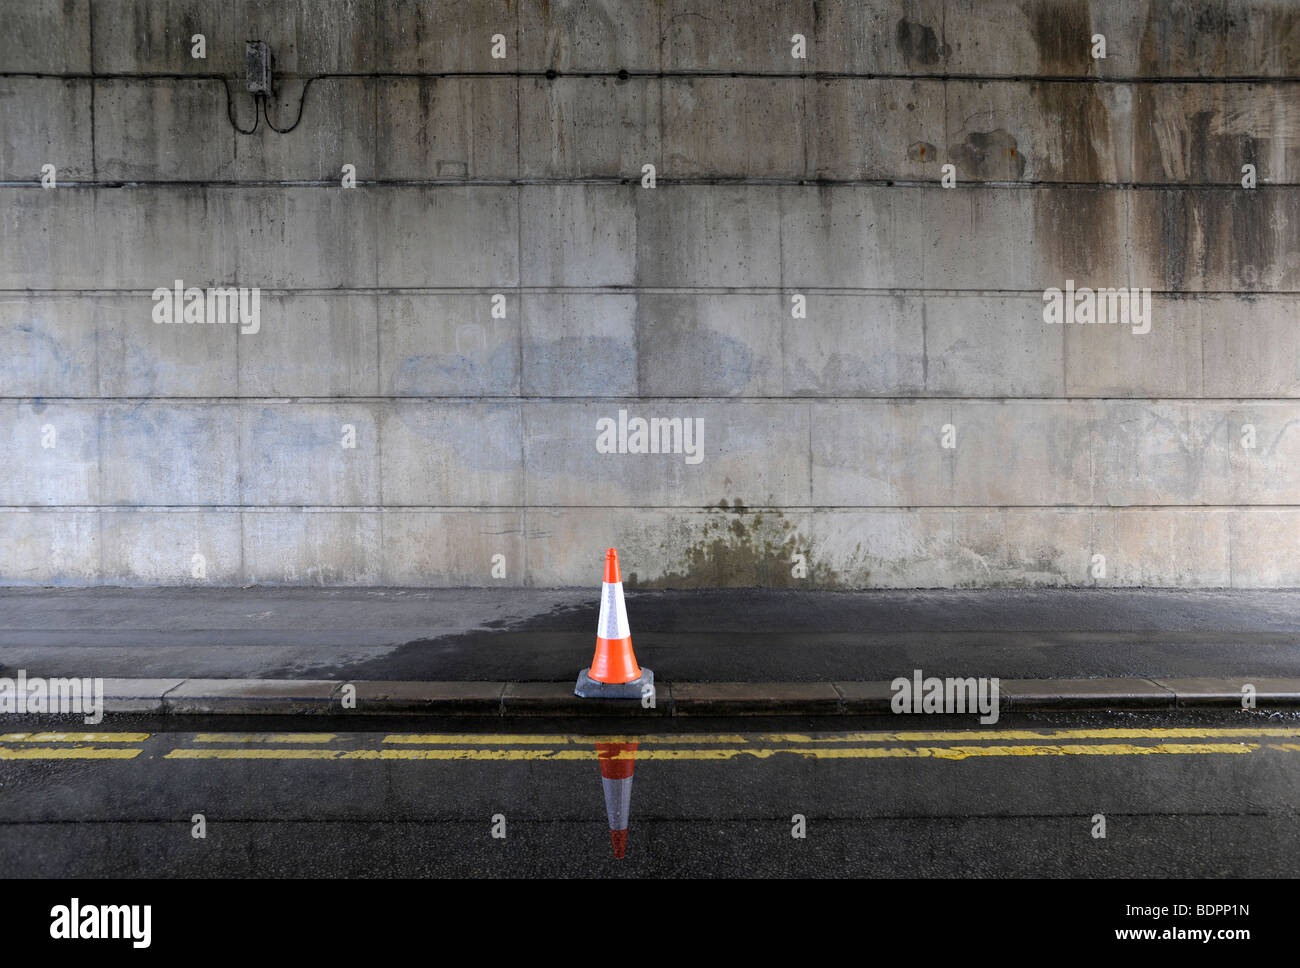 bollard on road near puddle of water - Stock Image